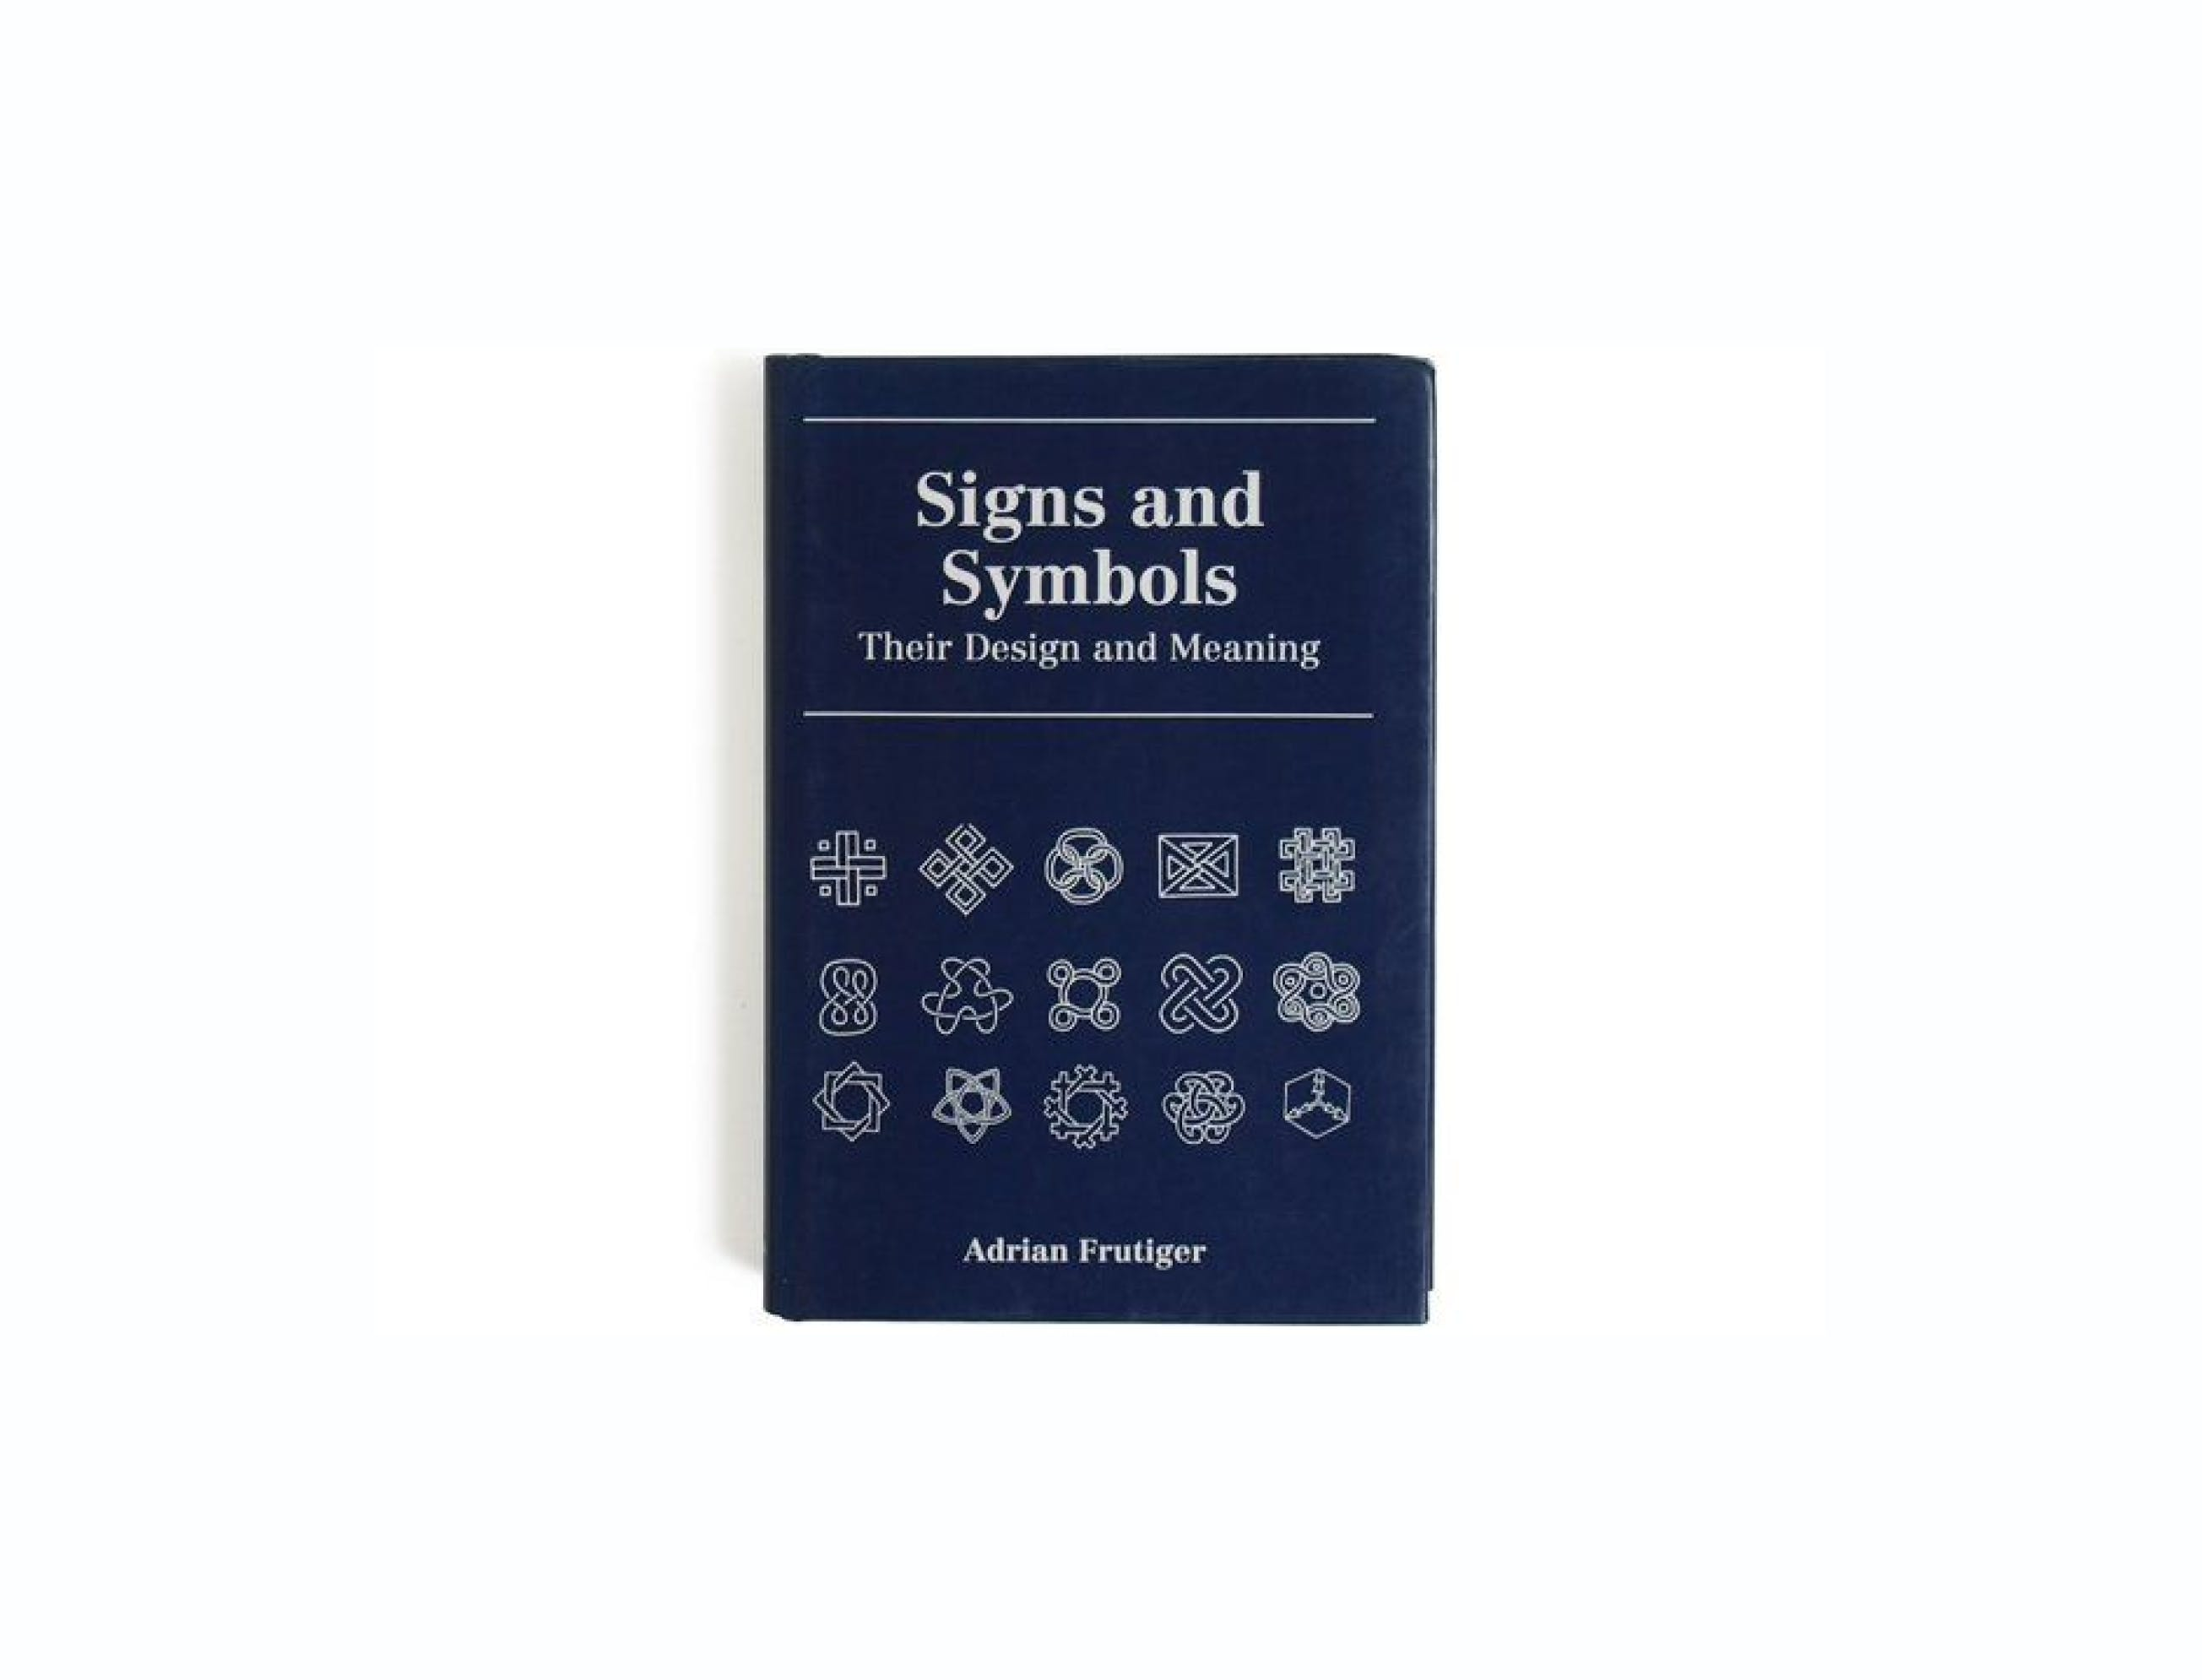 signs and symbols book